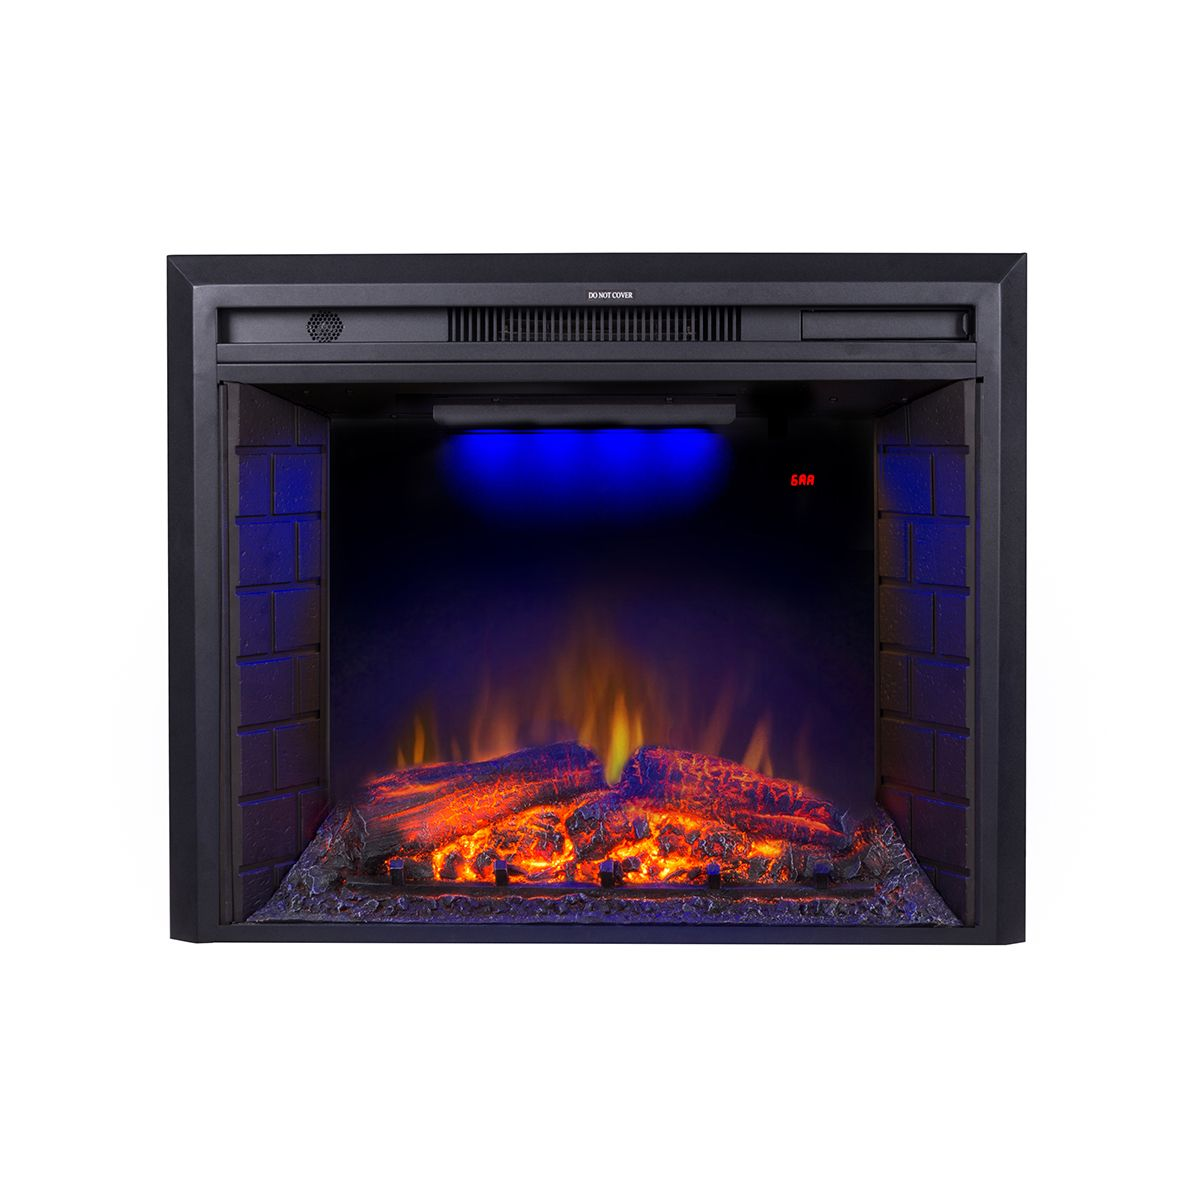 Hull Electric Fireplace Insert Electric Fireplace Insert Wall